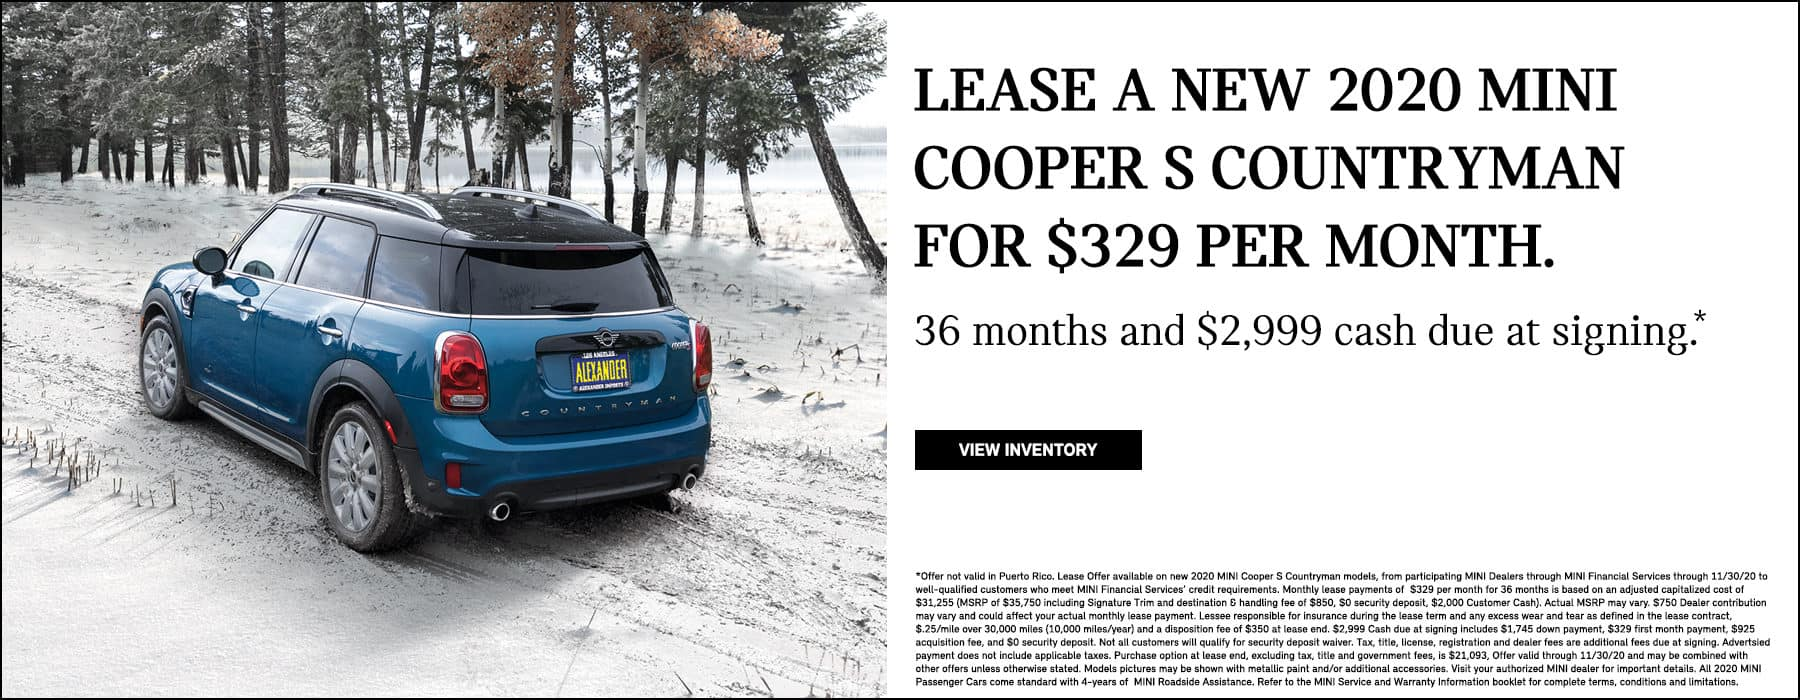 MINI Cooper S Countryman lowest lease offer payment best price black friday